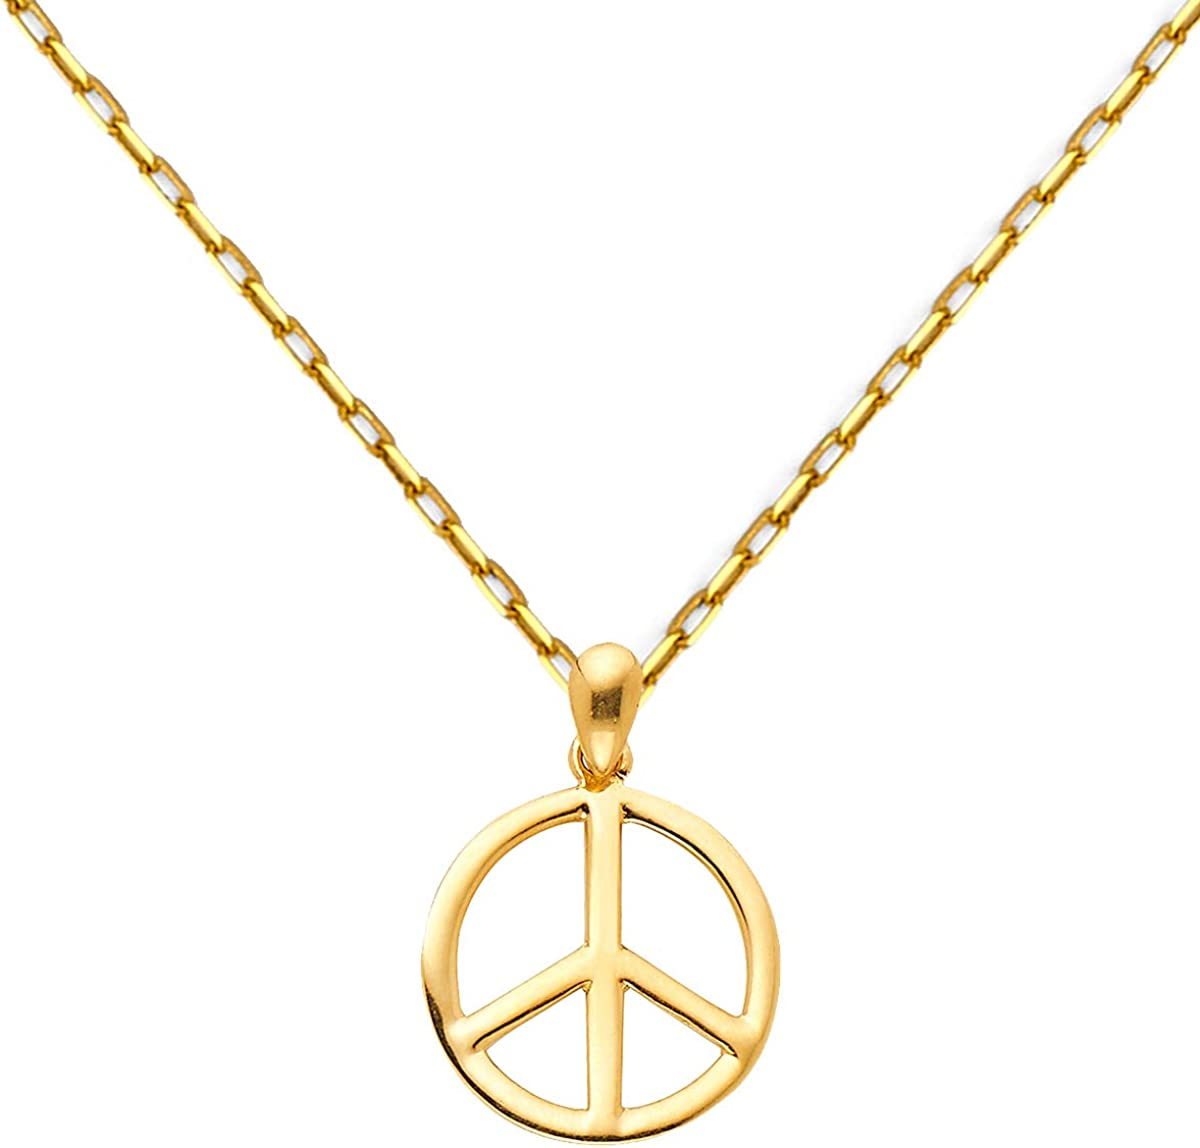 TGDJ 14k Yellow Gold Peace Max 90% OFF Directly managed store Sign Pendant 0.9mm Chain Cable with N